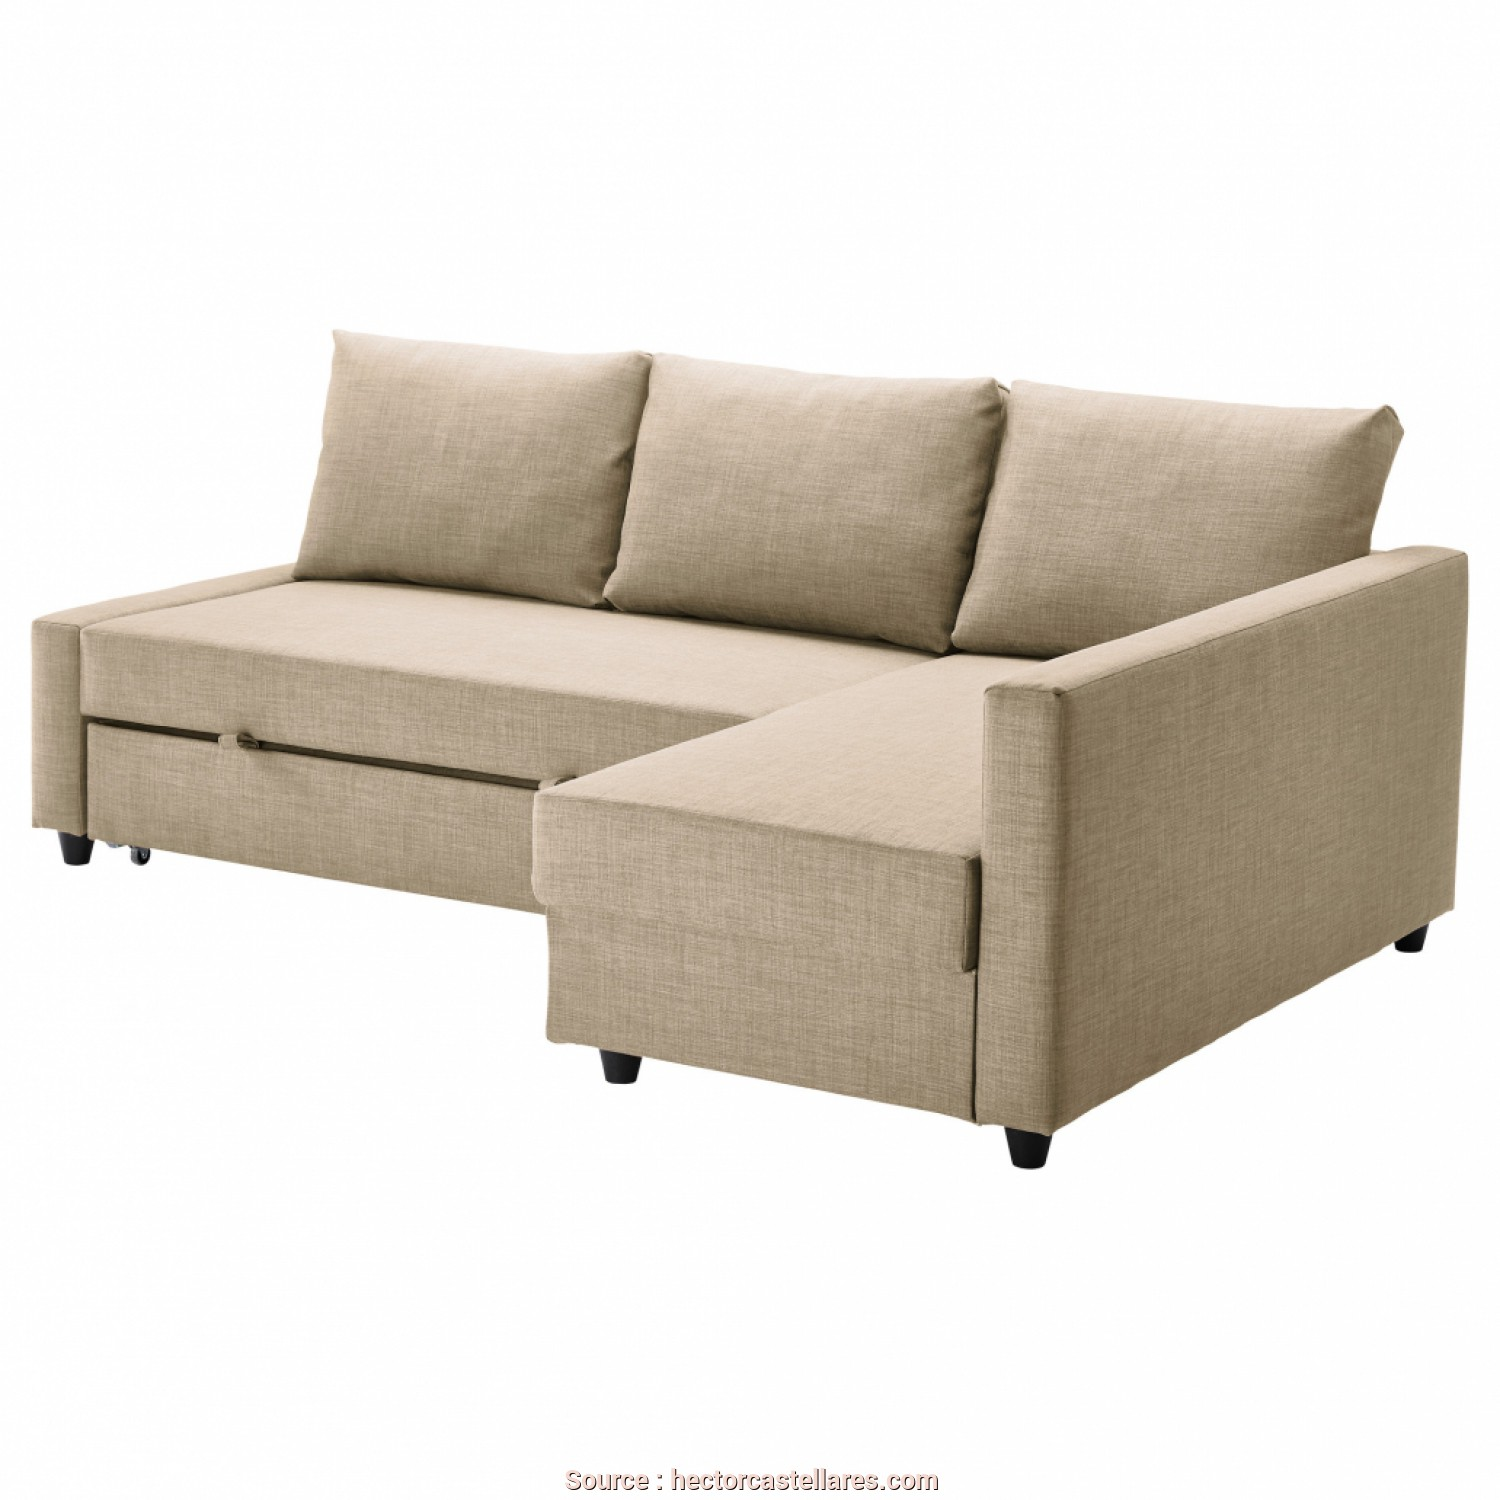 Ikea Backabro Bettsofa Maestoso Ikea Backabro Schlafsofa